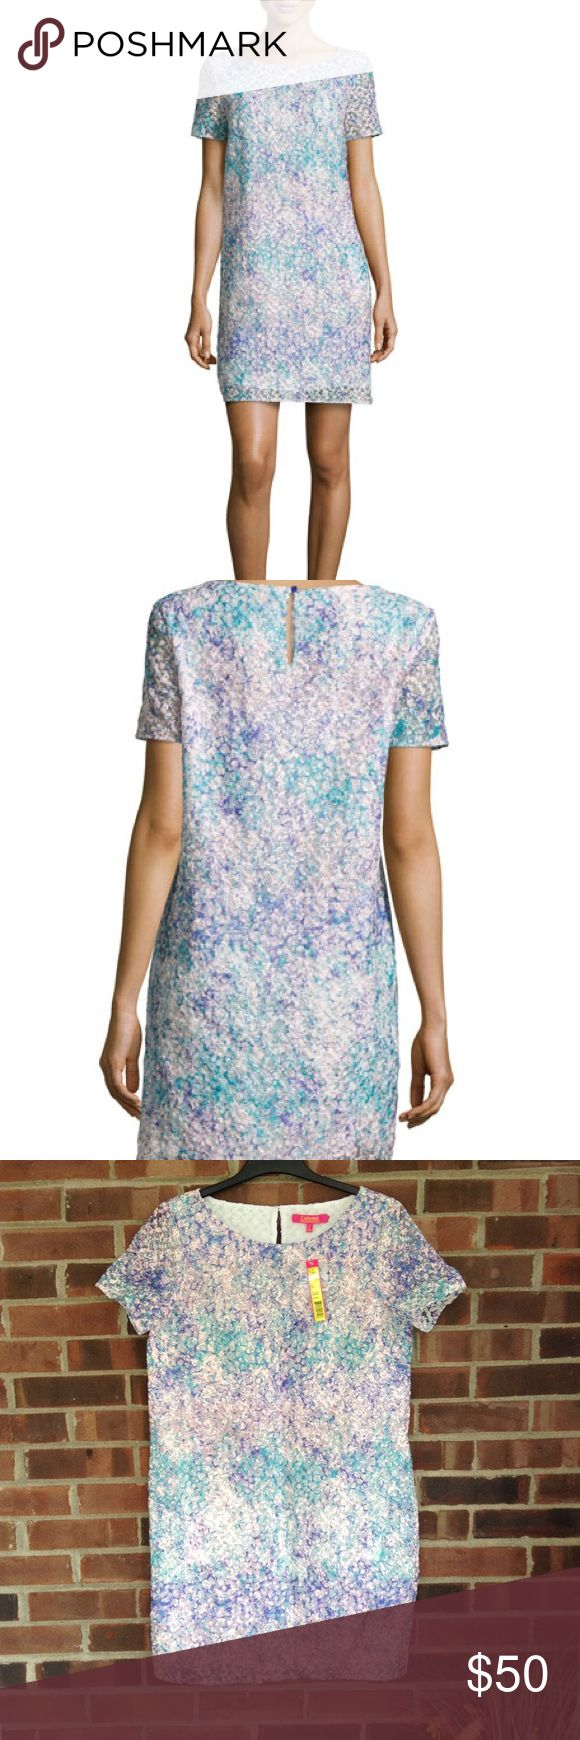 NWT Catherine Malandrino bronwyn shift dress Sz 6 Brand new with tag. Catherine Catherine Malandrino Bronwyn floral embroidered shift dress. Bateau neckline, button keyhole back. Short sleeve. Perfect for spring, Easter and summer. Smoke and pet free home. Fast shipping. Catherine Malandrino Dresses